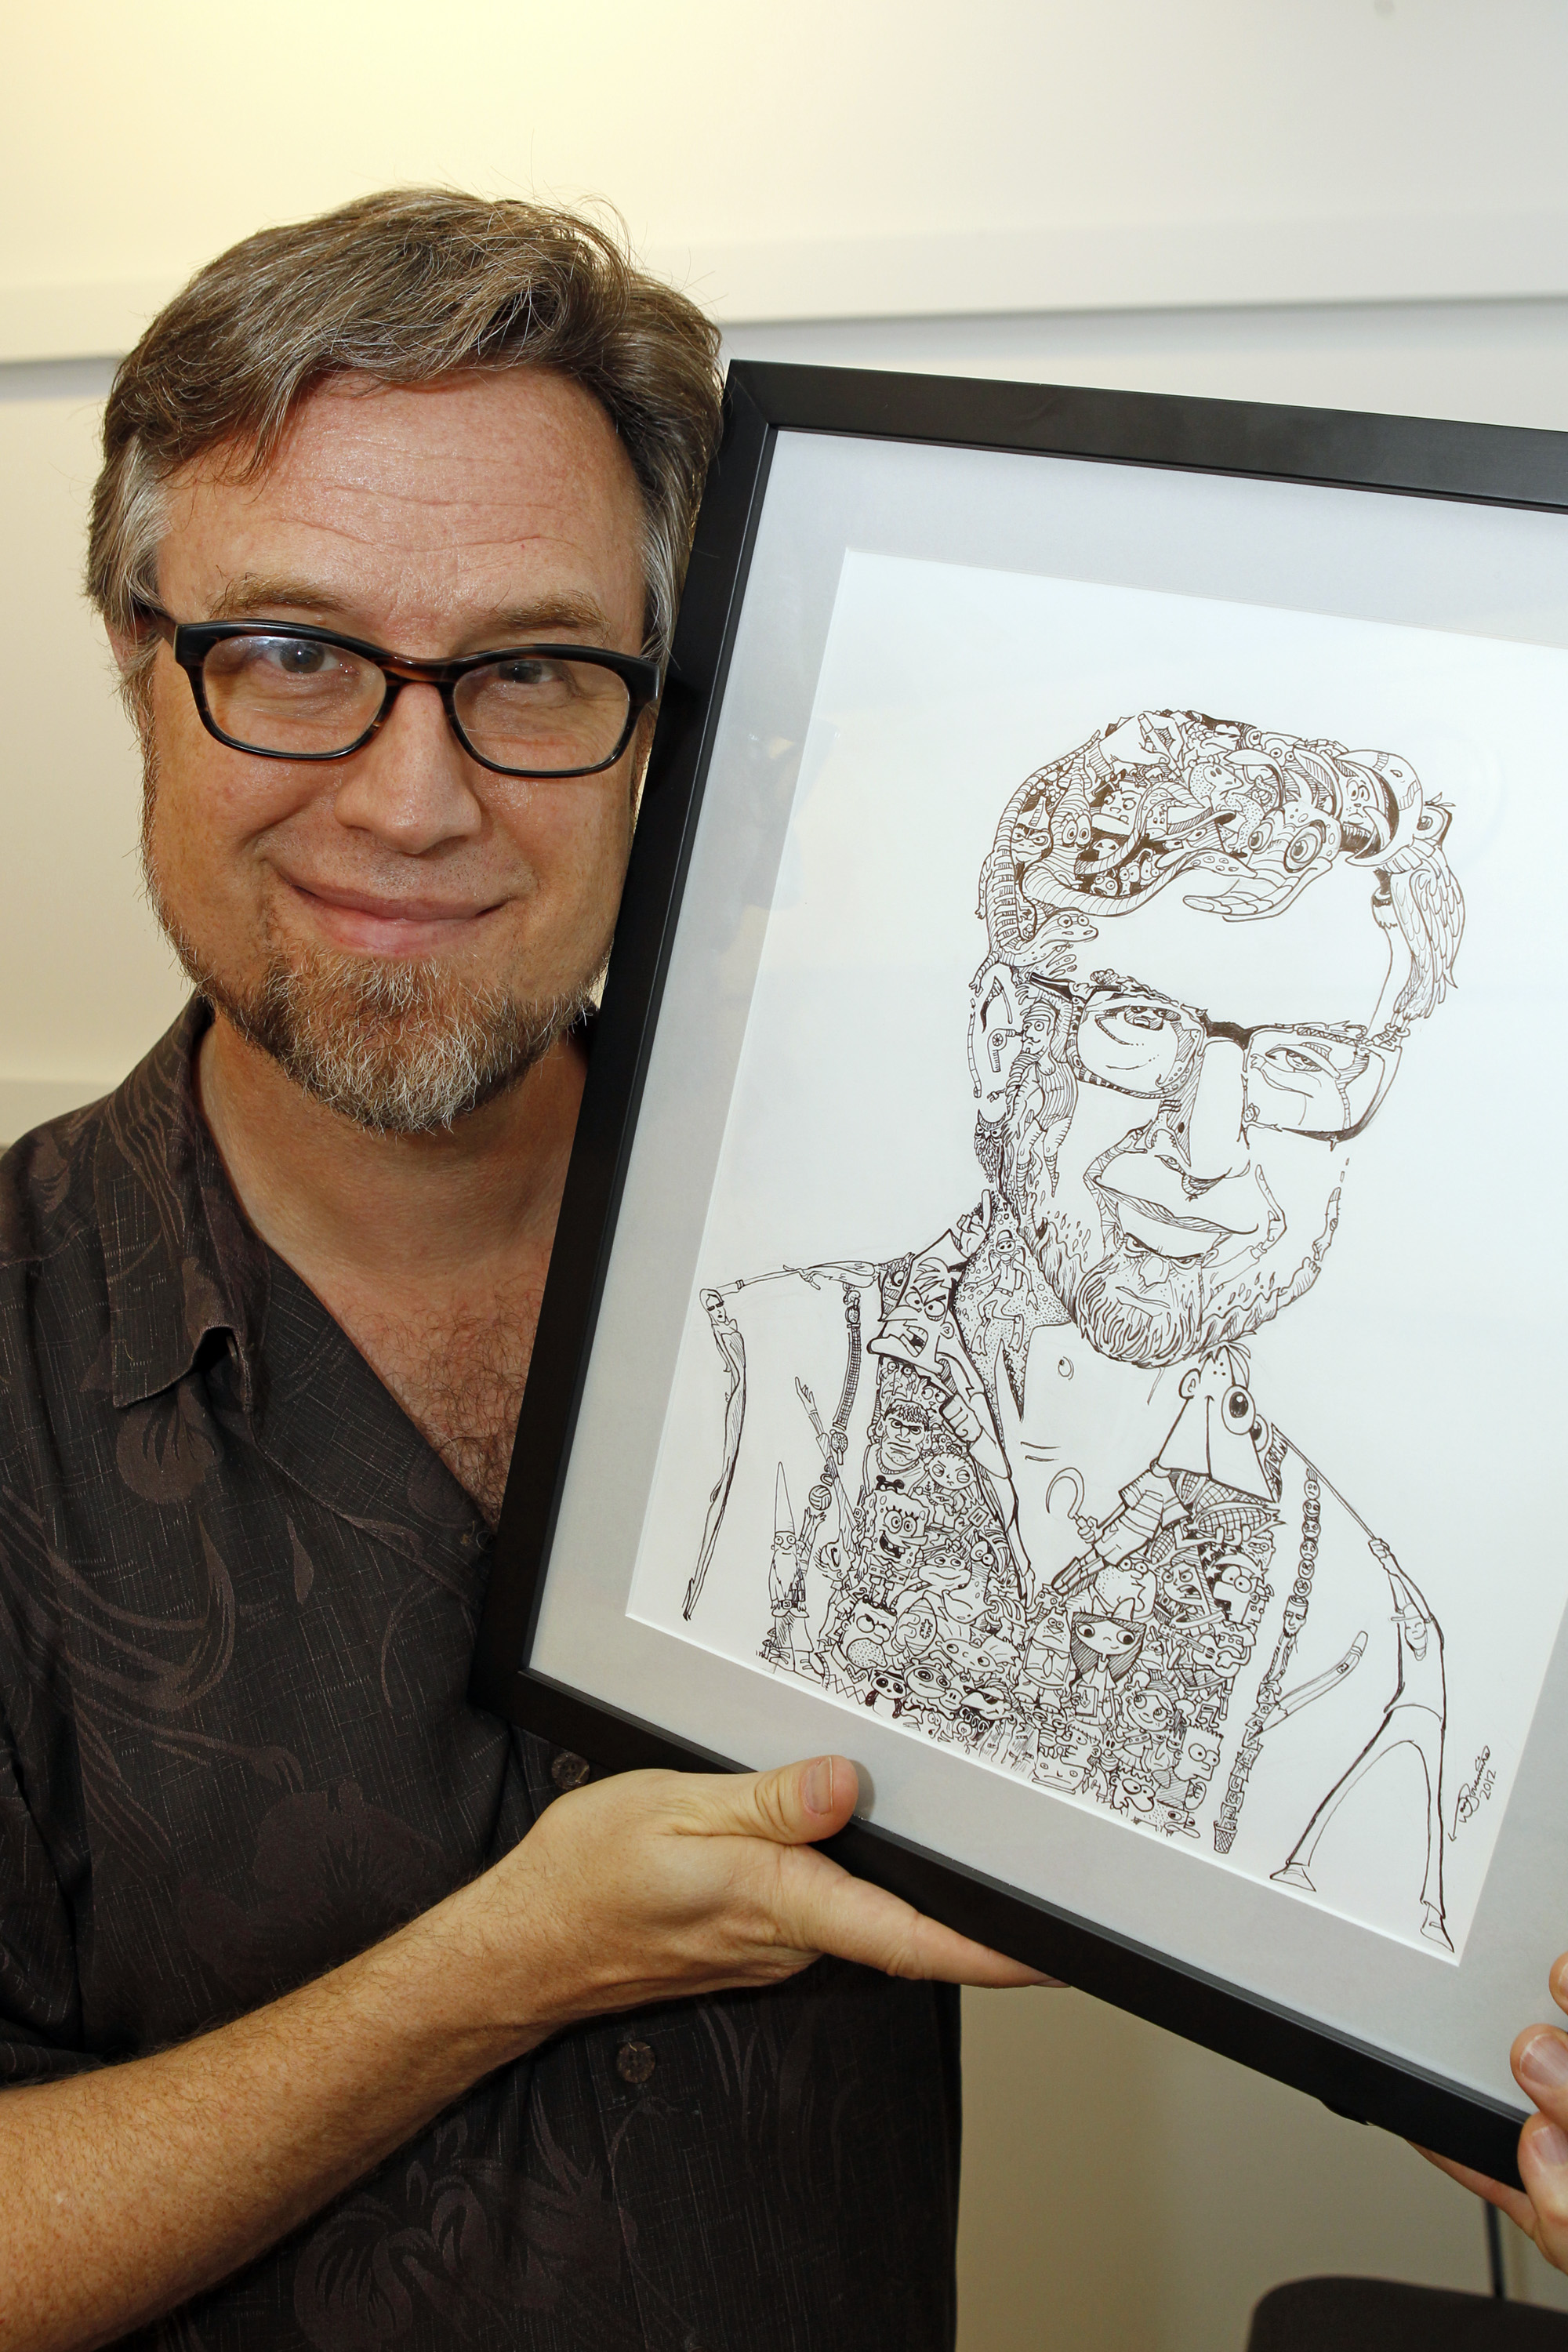 dan povenmire net worth